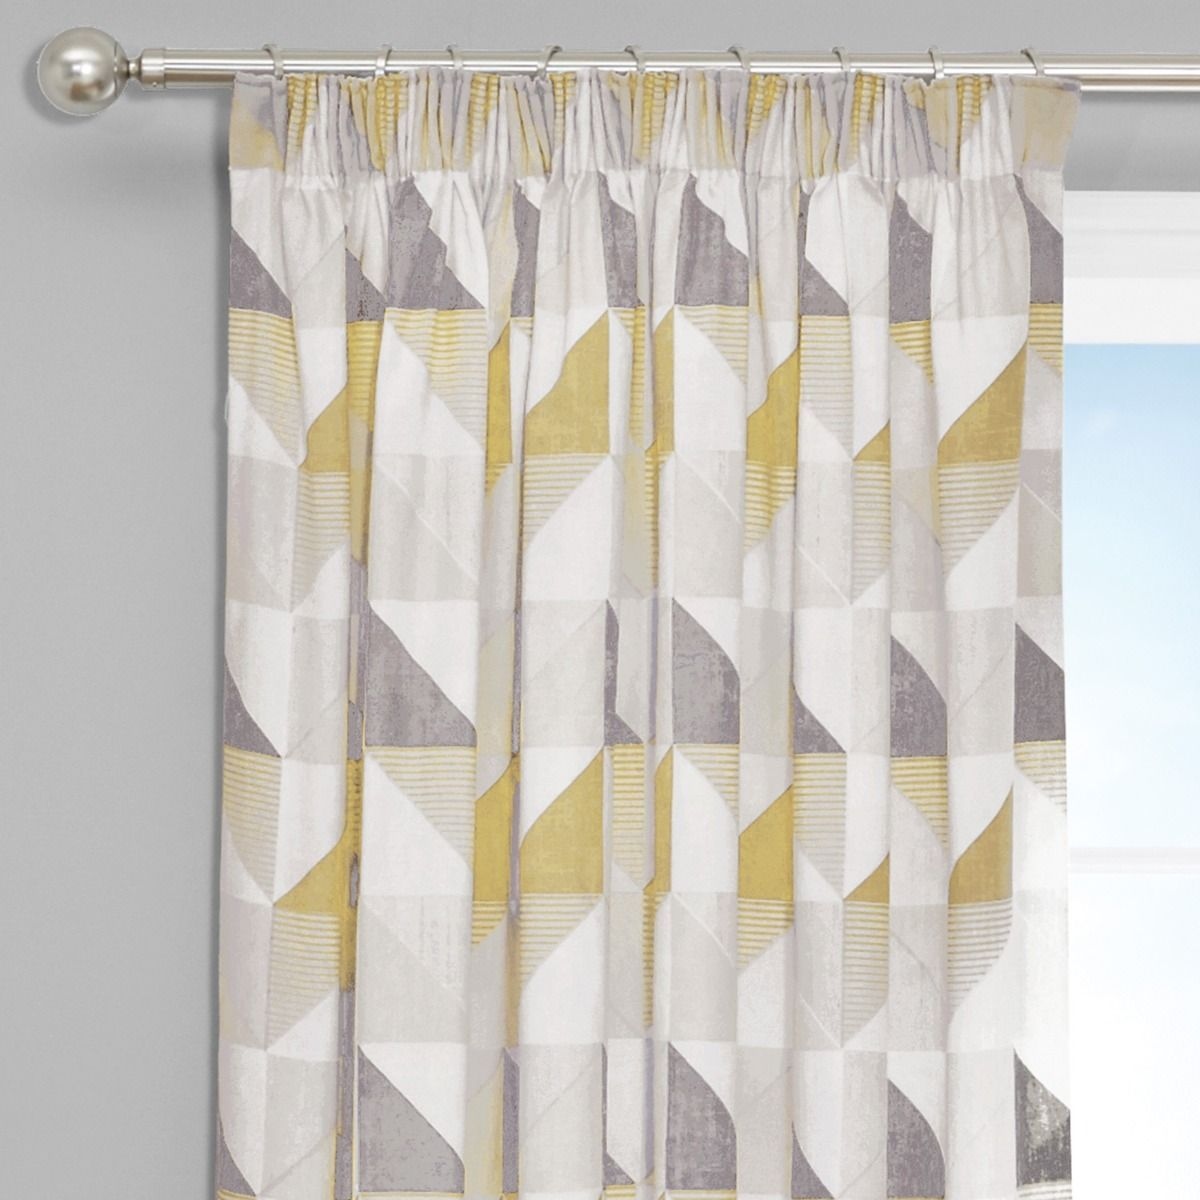 Delta Grey Yellow Luxury Lined Pencil Pleat Curtains Pair Julian Charles Pleated Curtains Pencil Pleat Curtains Pair